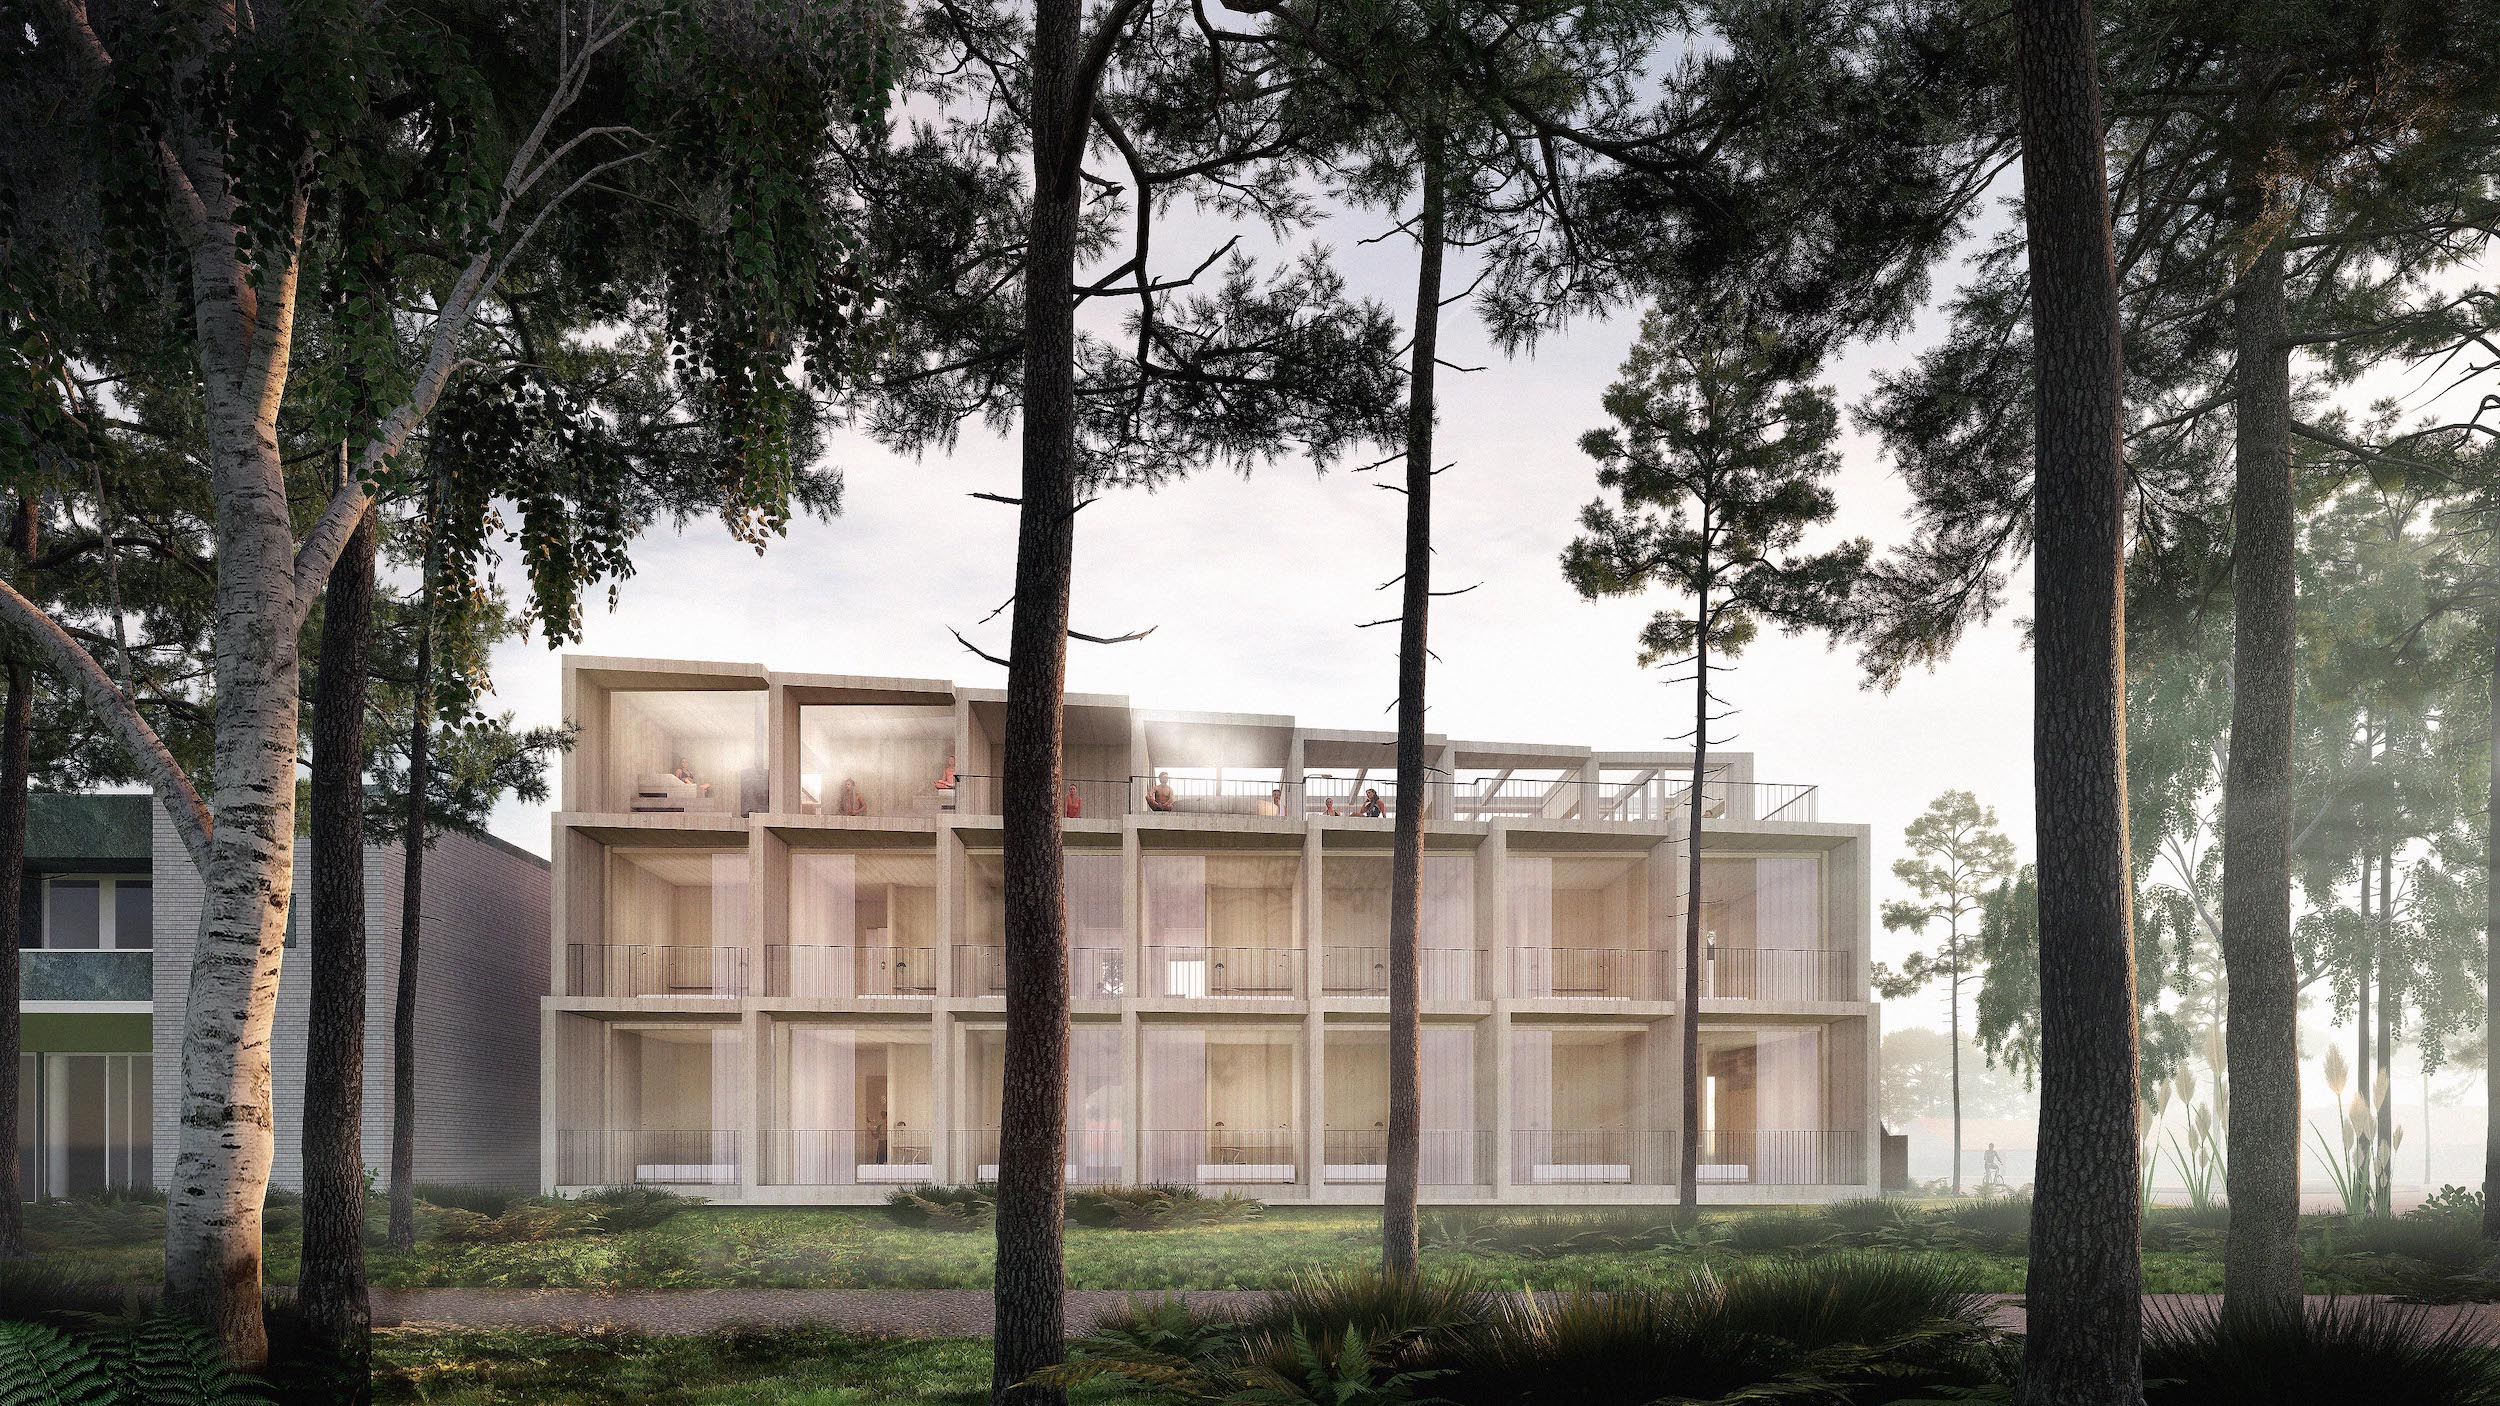 illustration of an all-wood hotel nestled behind trees